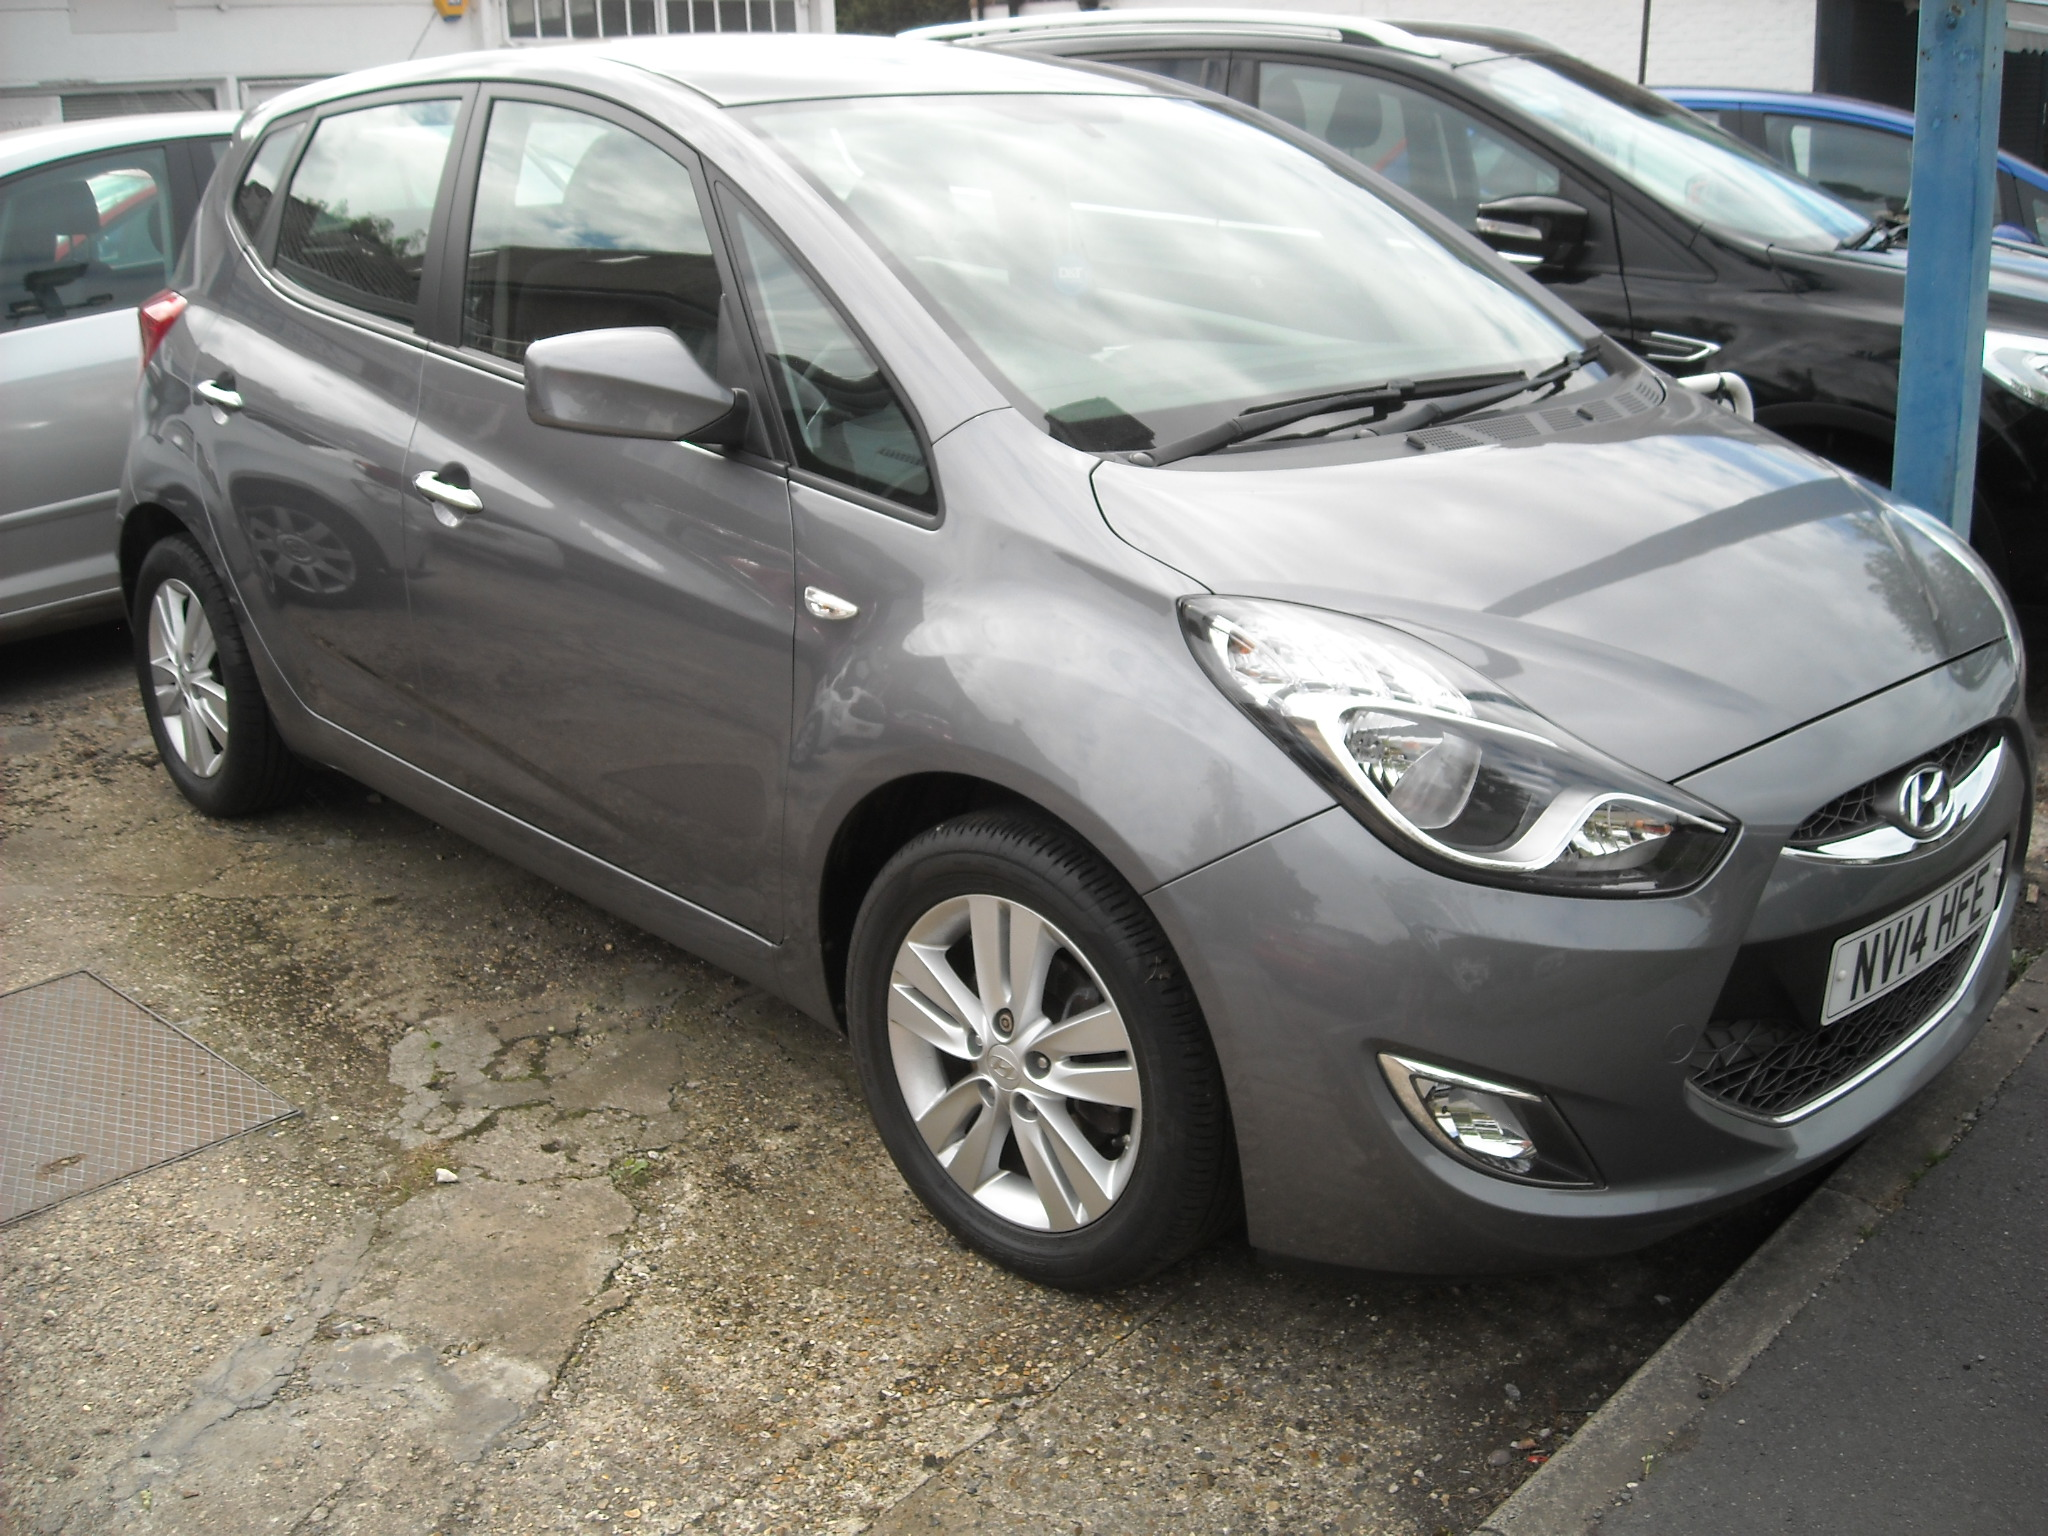 Hyundai IX20 1.6 Automatic Petrol - New In